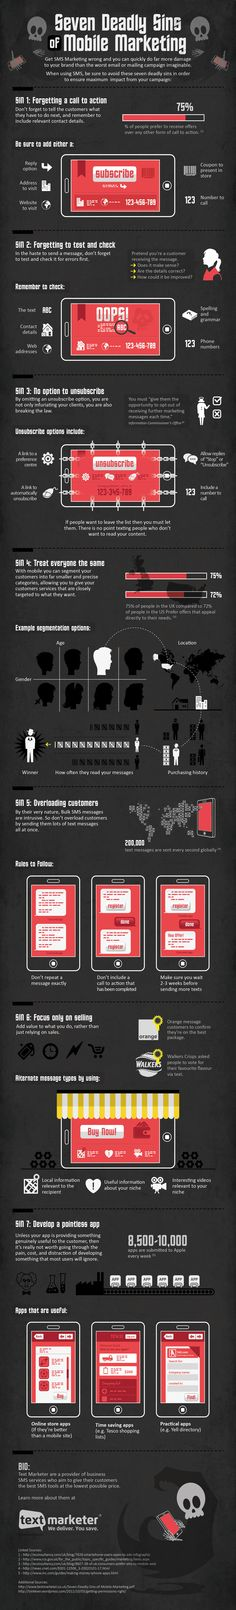 Seven Deadly Sins Of Mobile Marketing Infographic Infographic Marketing Mobile Marketing Mobile Marketing Infographics